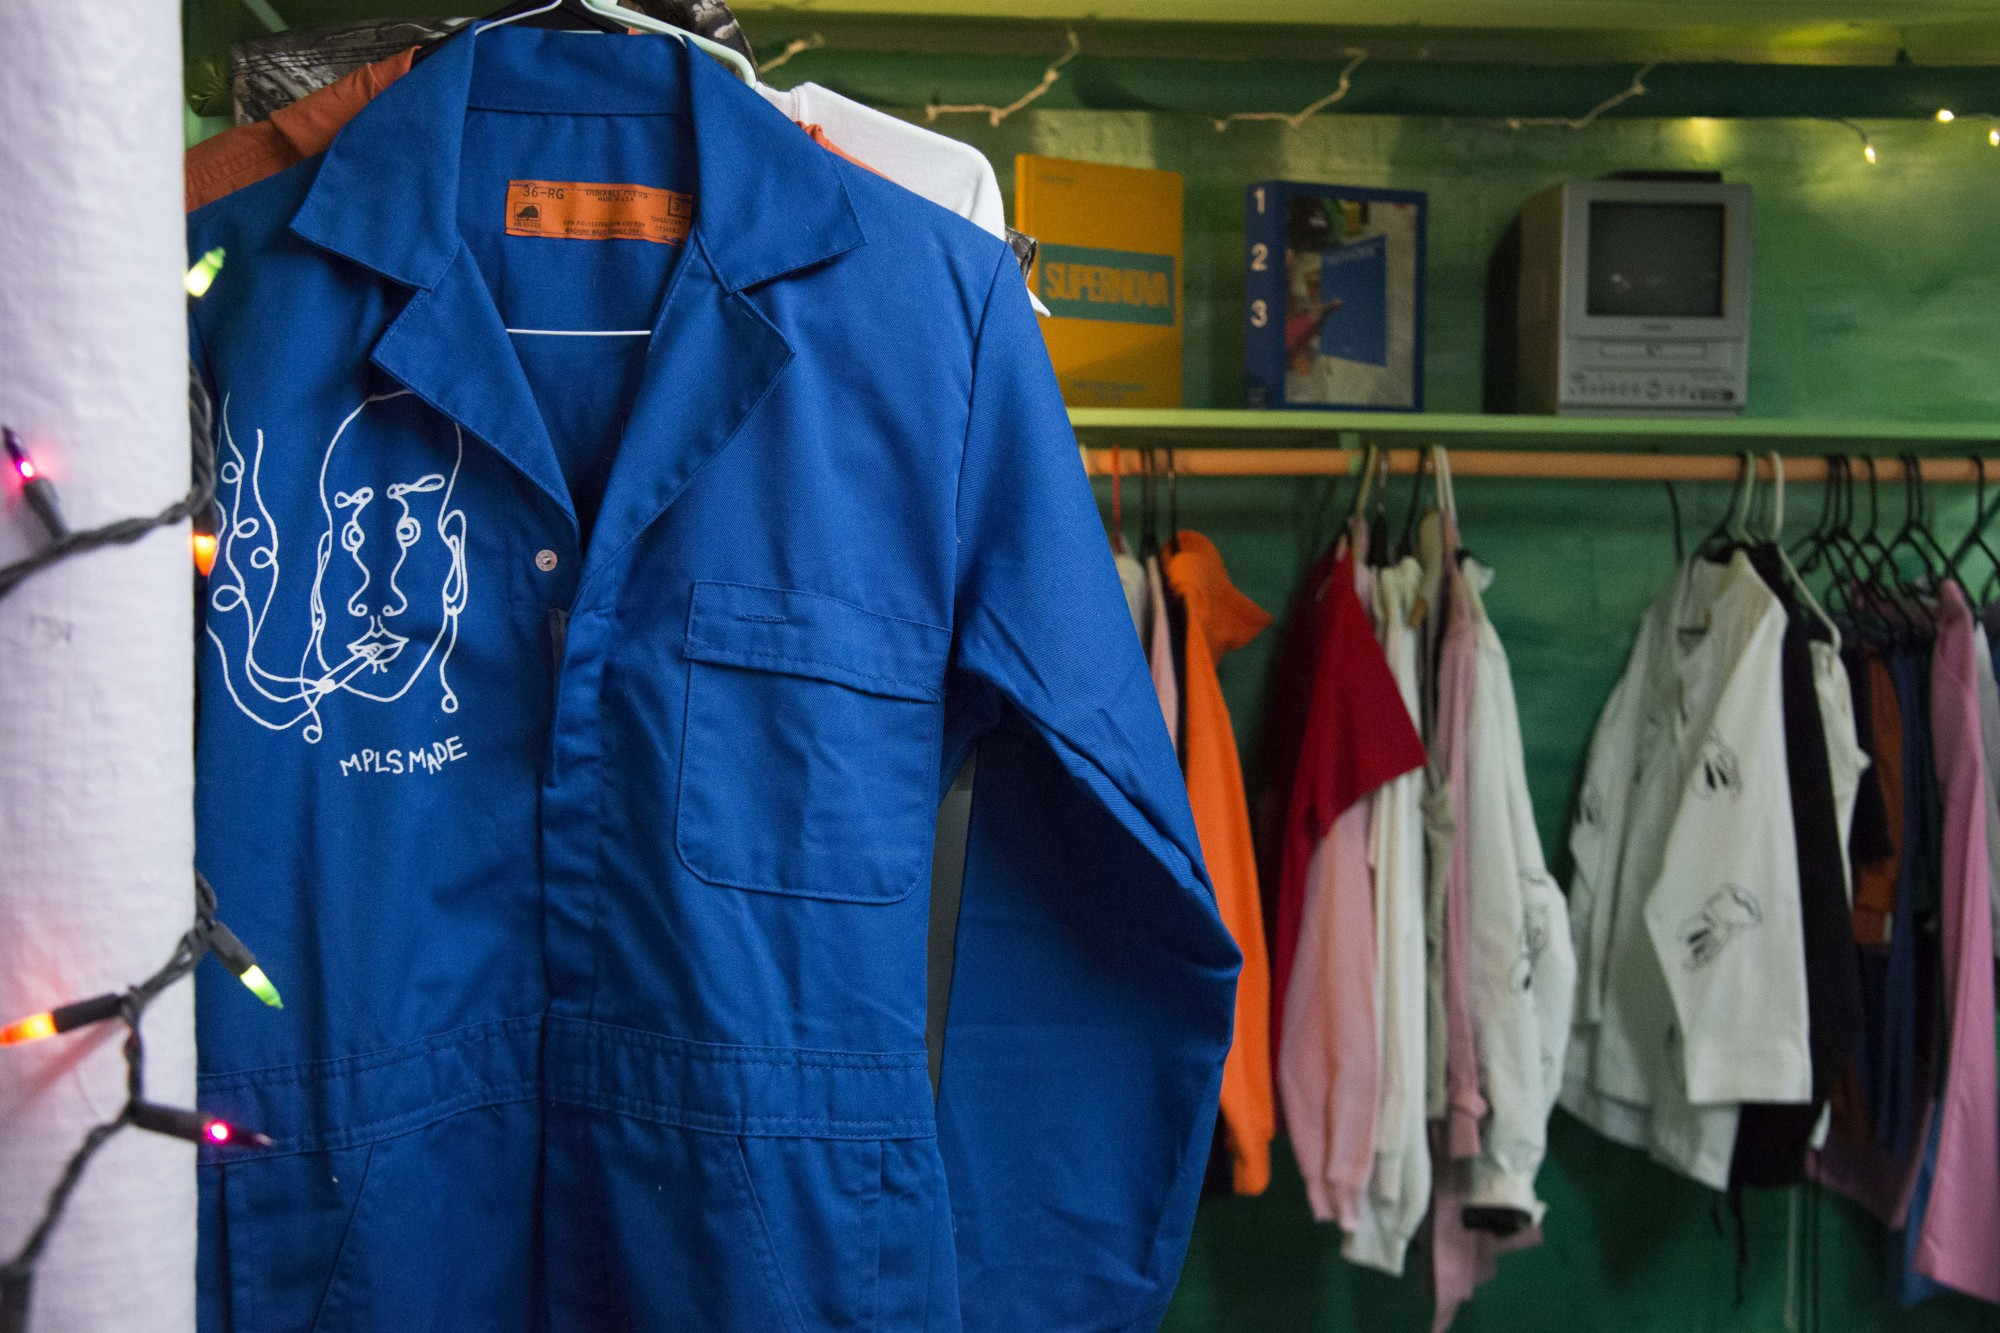 <p>A MPLS MADE jumpsuit hangs on display in Elena Bagne's studio space in Northeast Minneapolis on Wednesday, Nov. 20. MPLS MADE is a custom hand-drawn and printed streetwear brand that uses thrifted clothing in an effort to be a sustainable. </p>